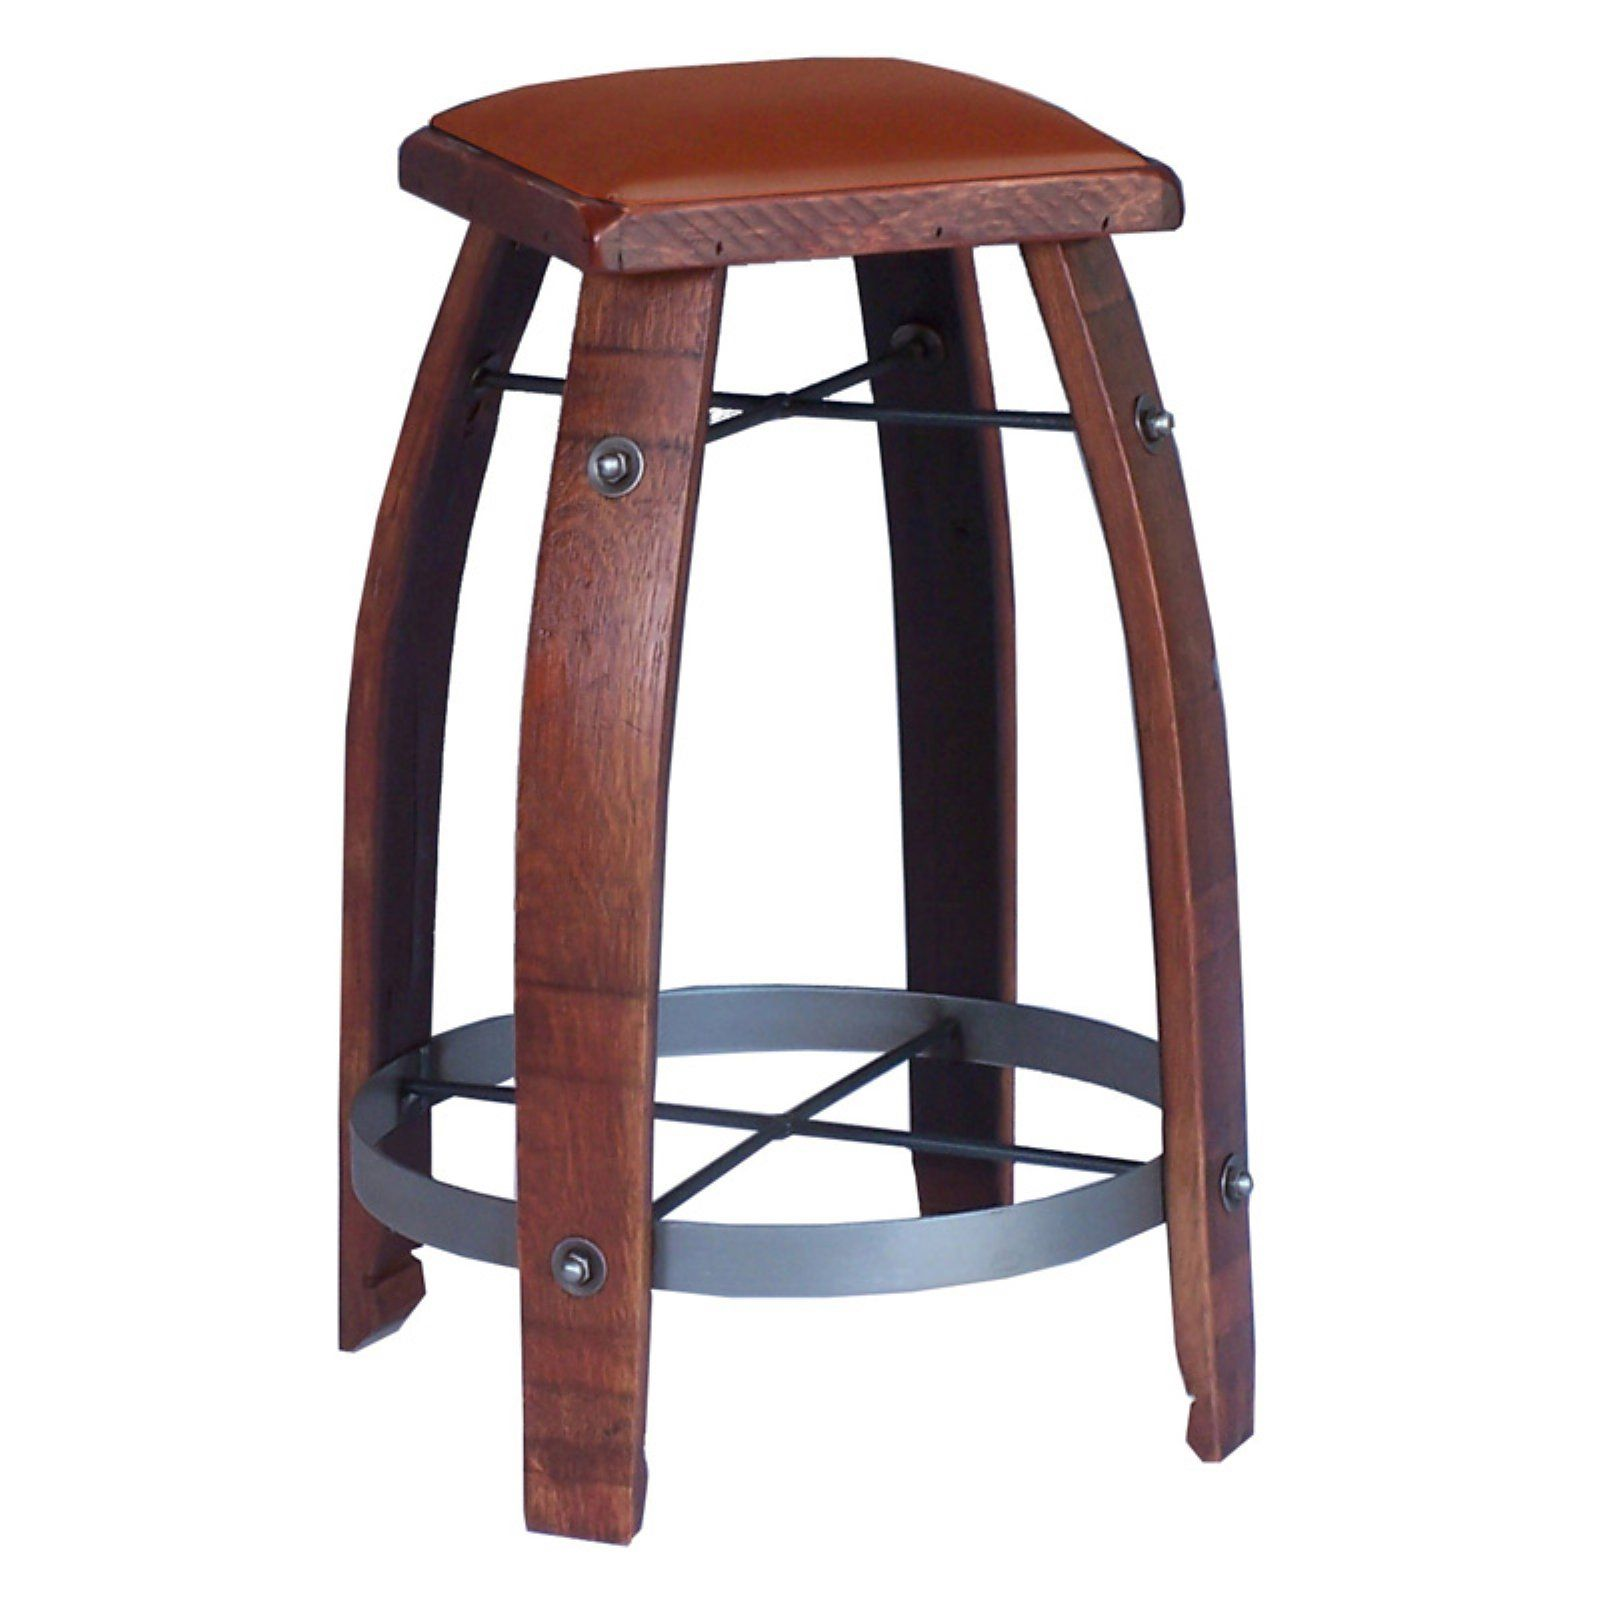 2 Day Designs Reclaimed 26 In Stave Wine Barrel Counter Stool Upholstered Seat Tan Wine Barrel Bar Wine Barrel Bar Stools Barrel Bar